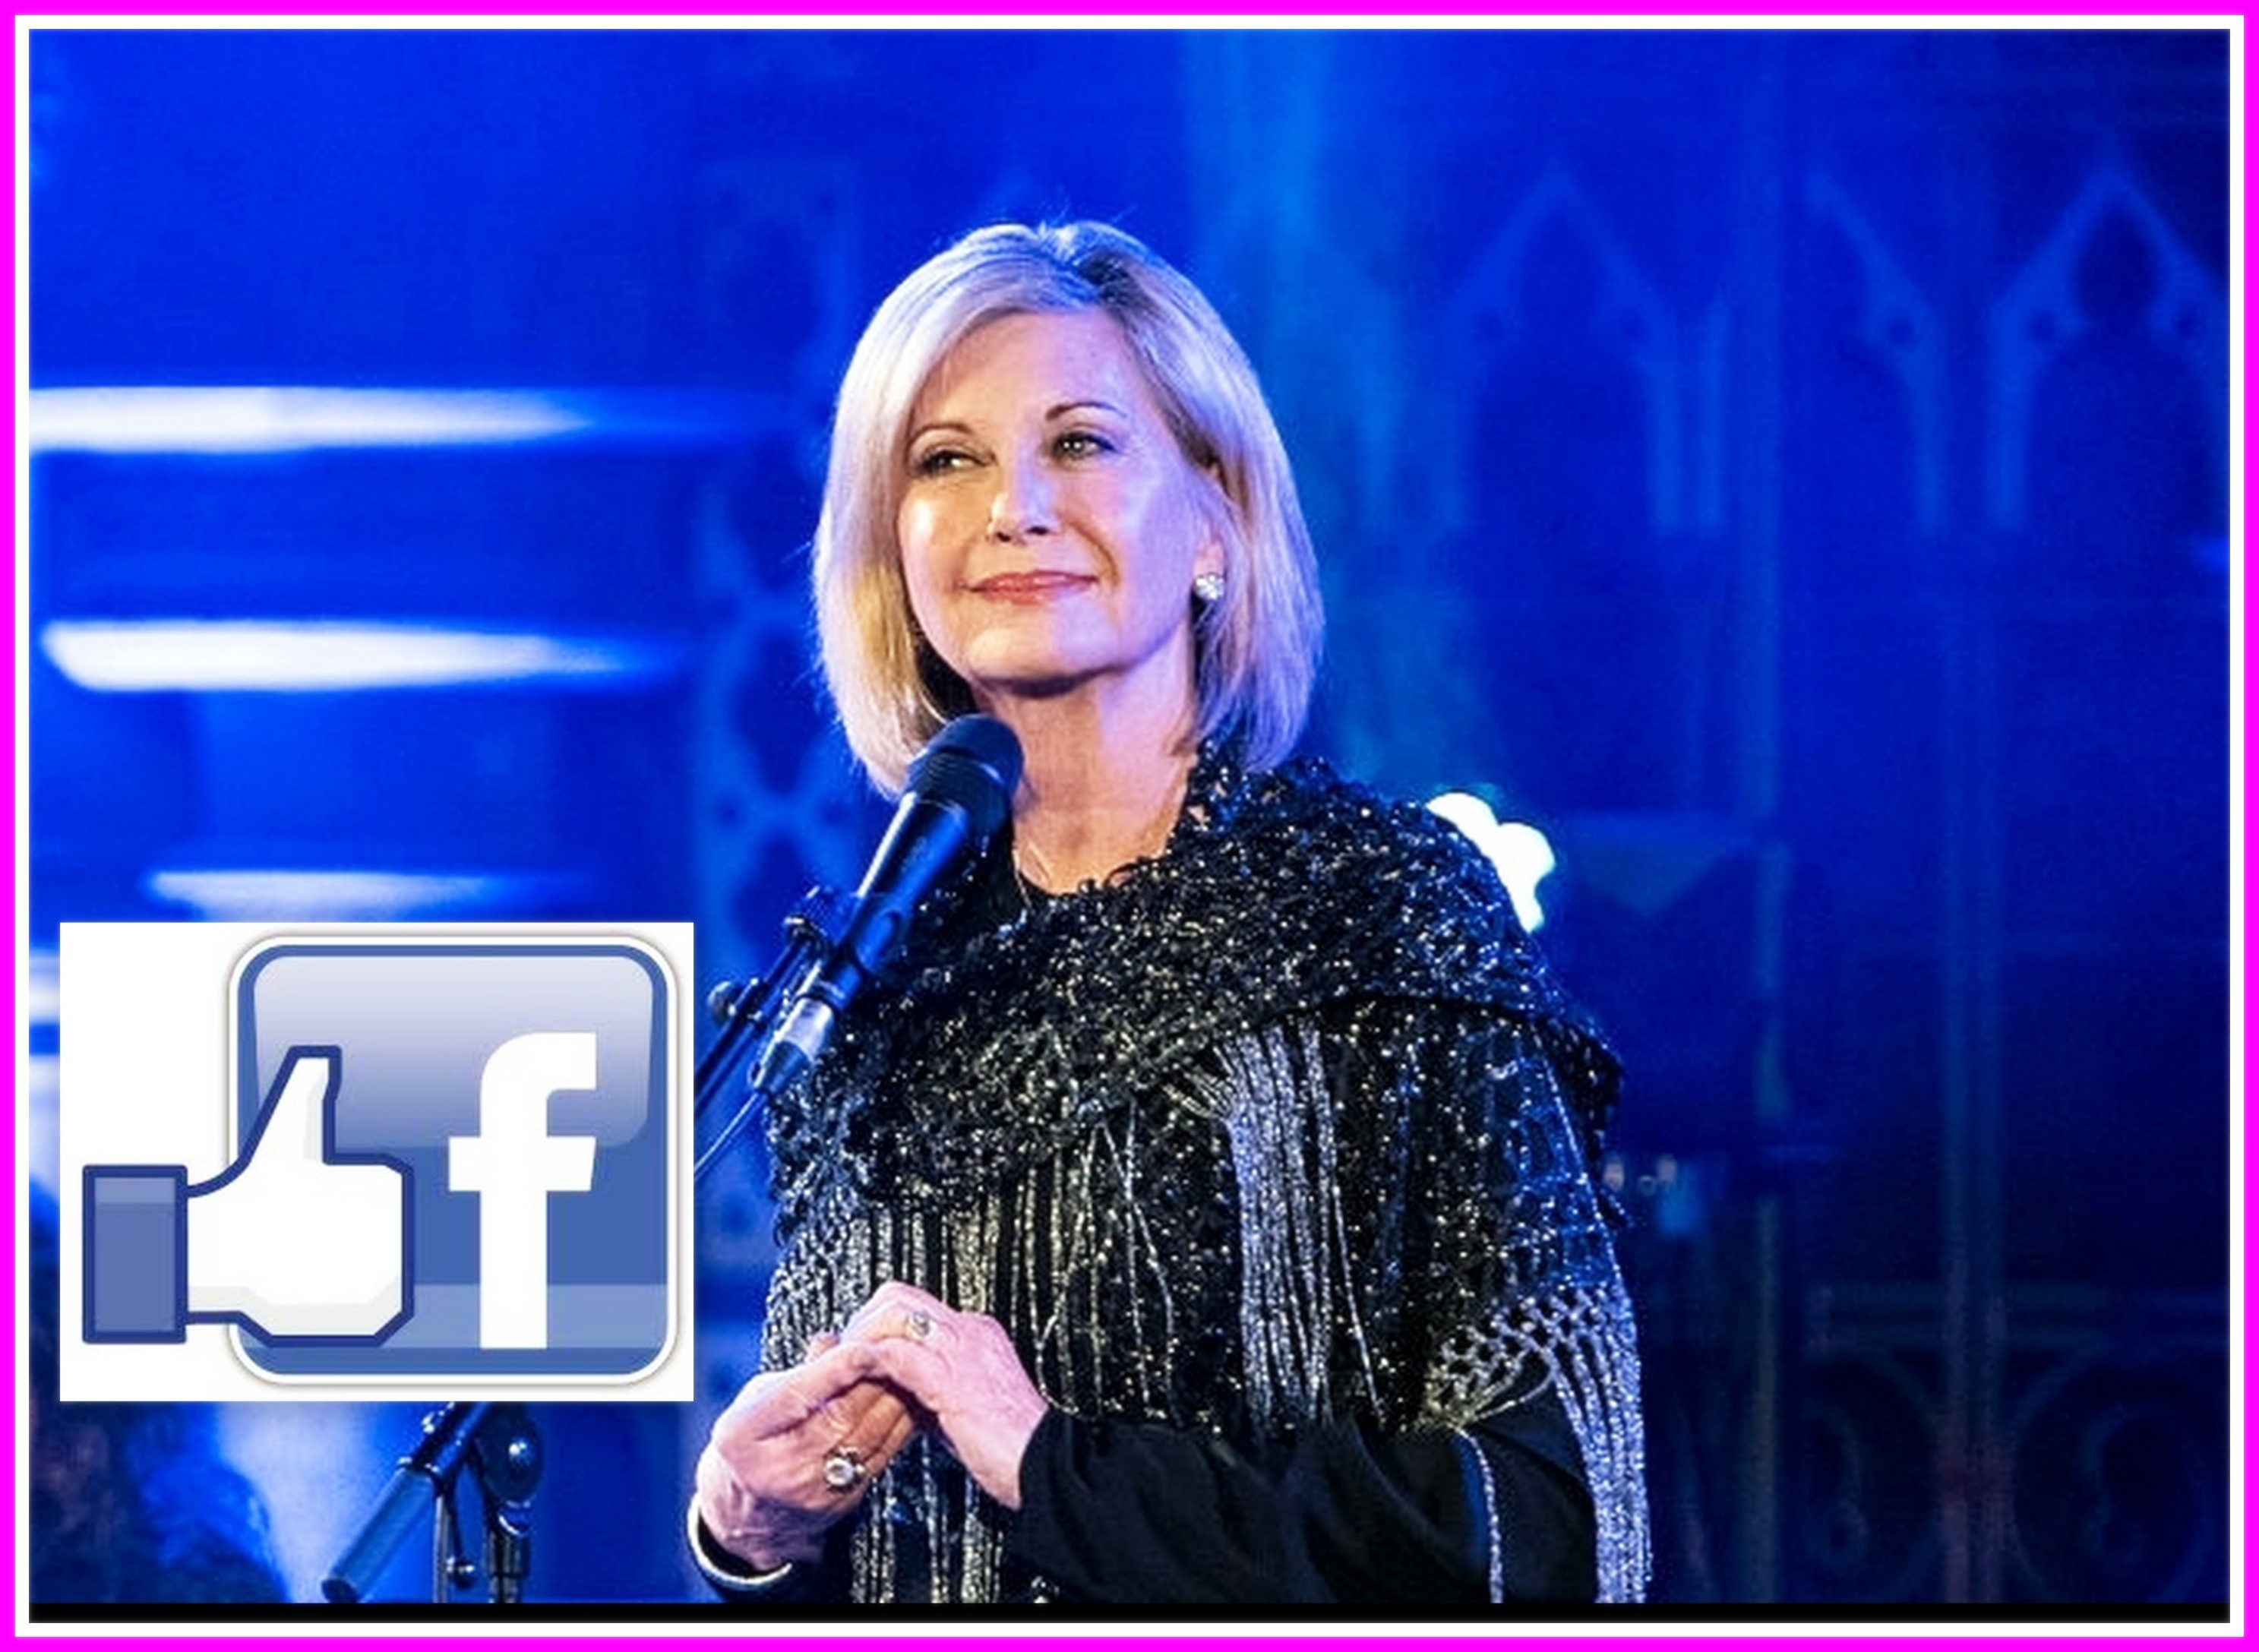 Olivia Newton-John On Facebook